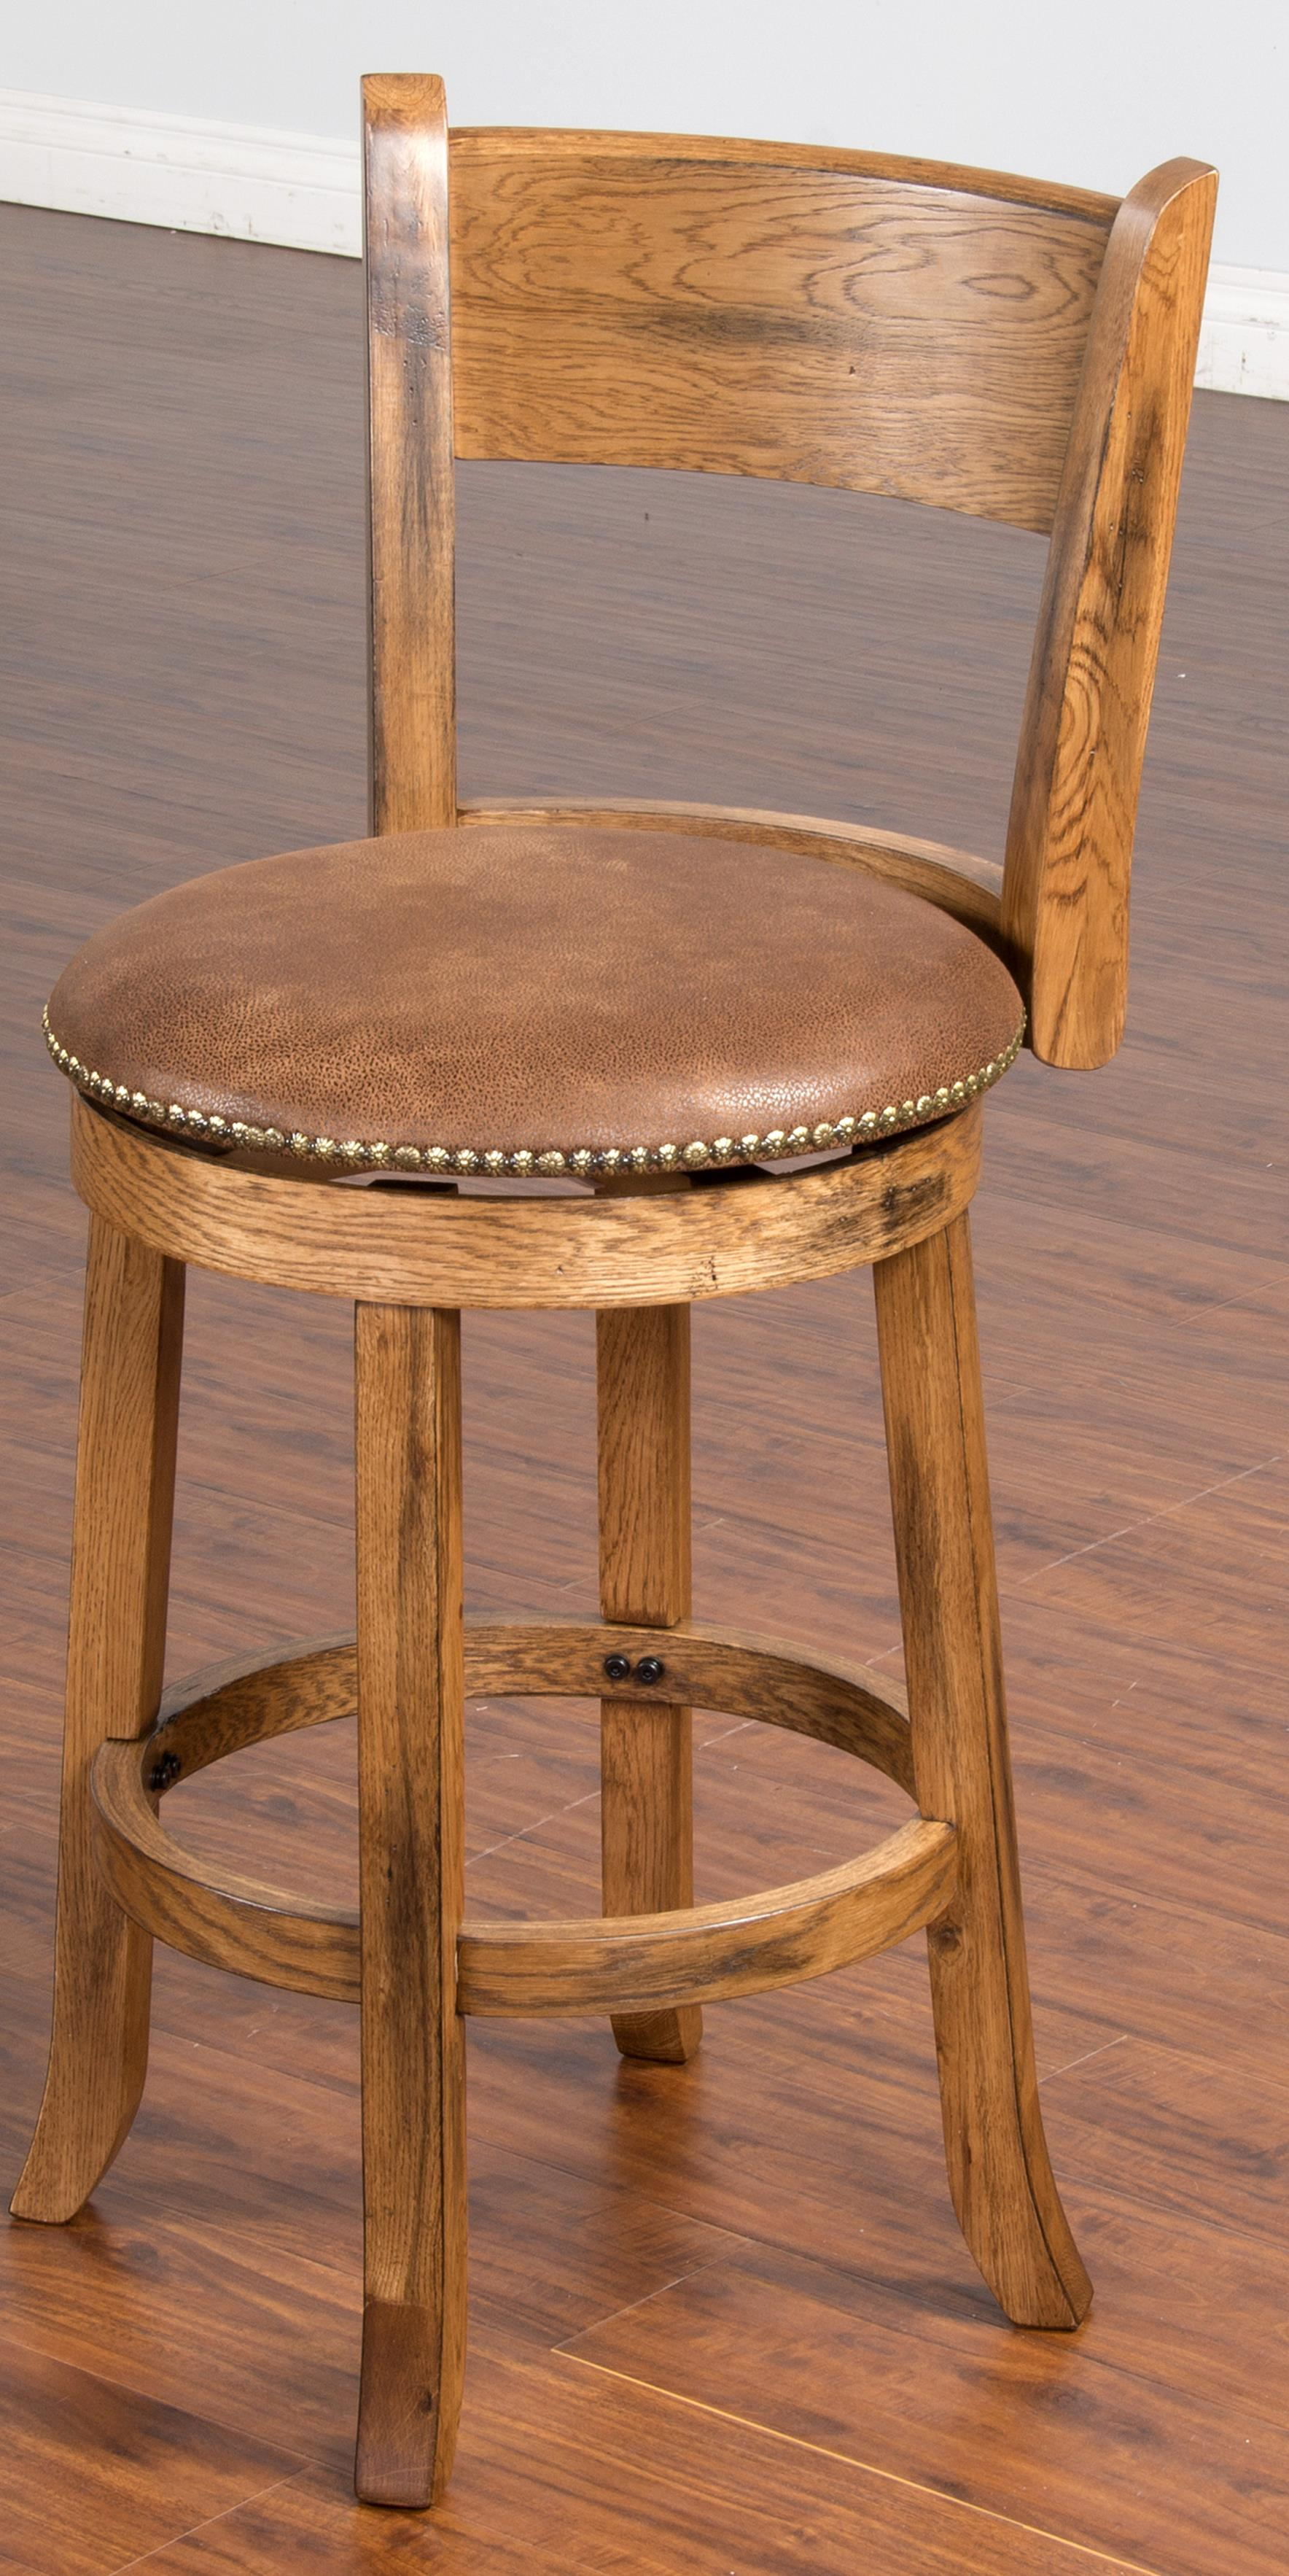 24 Quot Upholstered Swivel Stool W Back By Sunny Designs